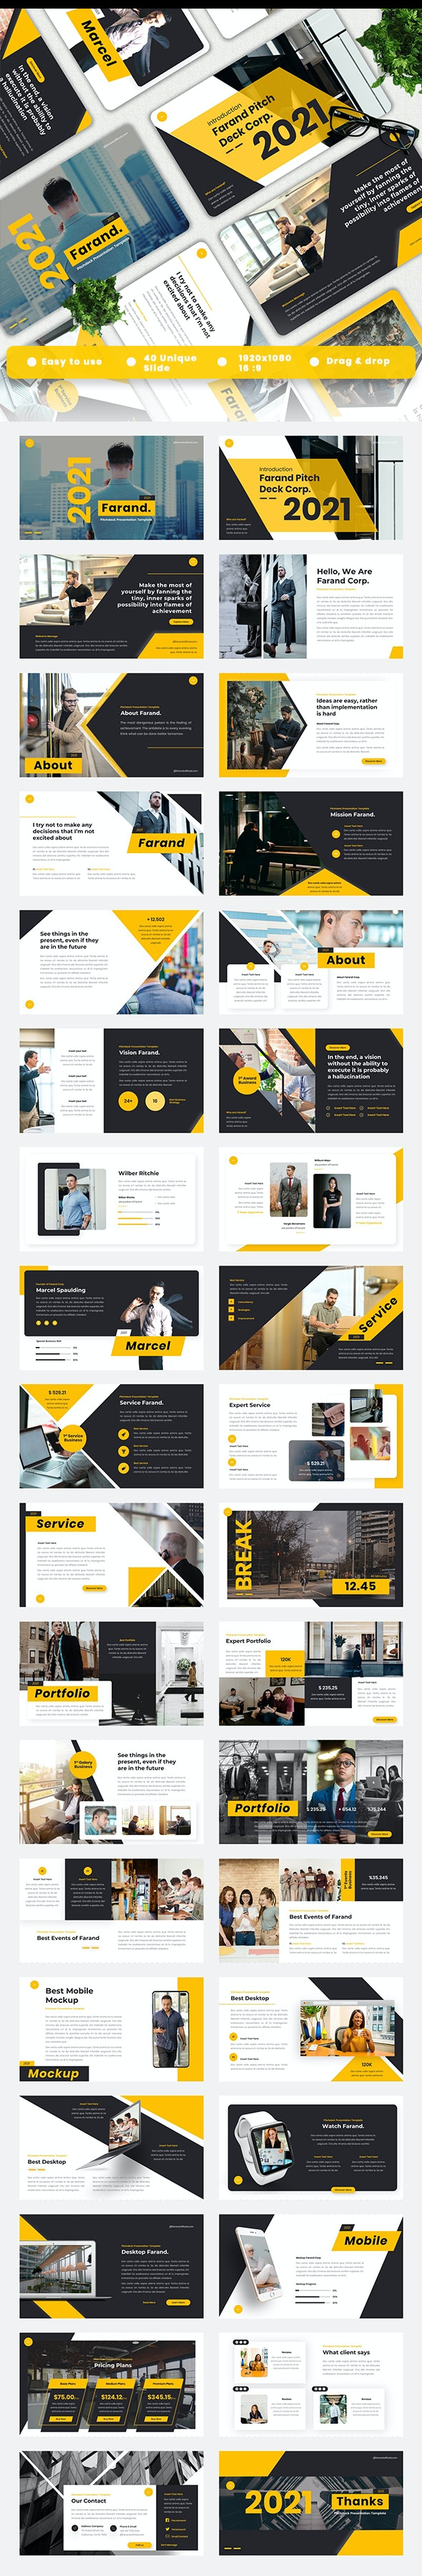 Farand - Pitch Deck Powerpoint Template - Business PowerPoint Templates